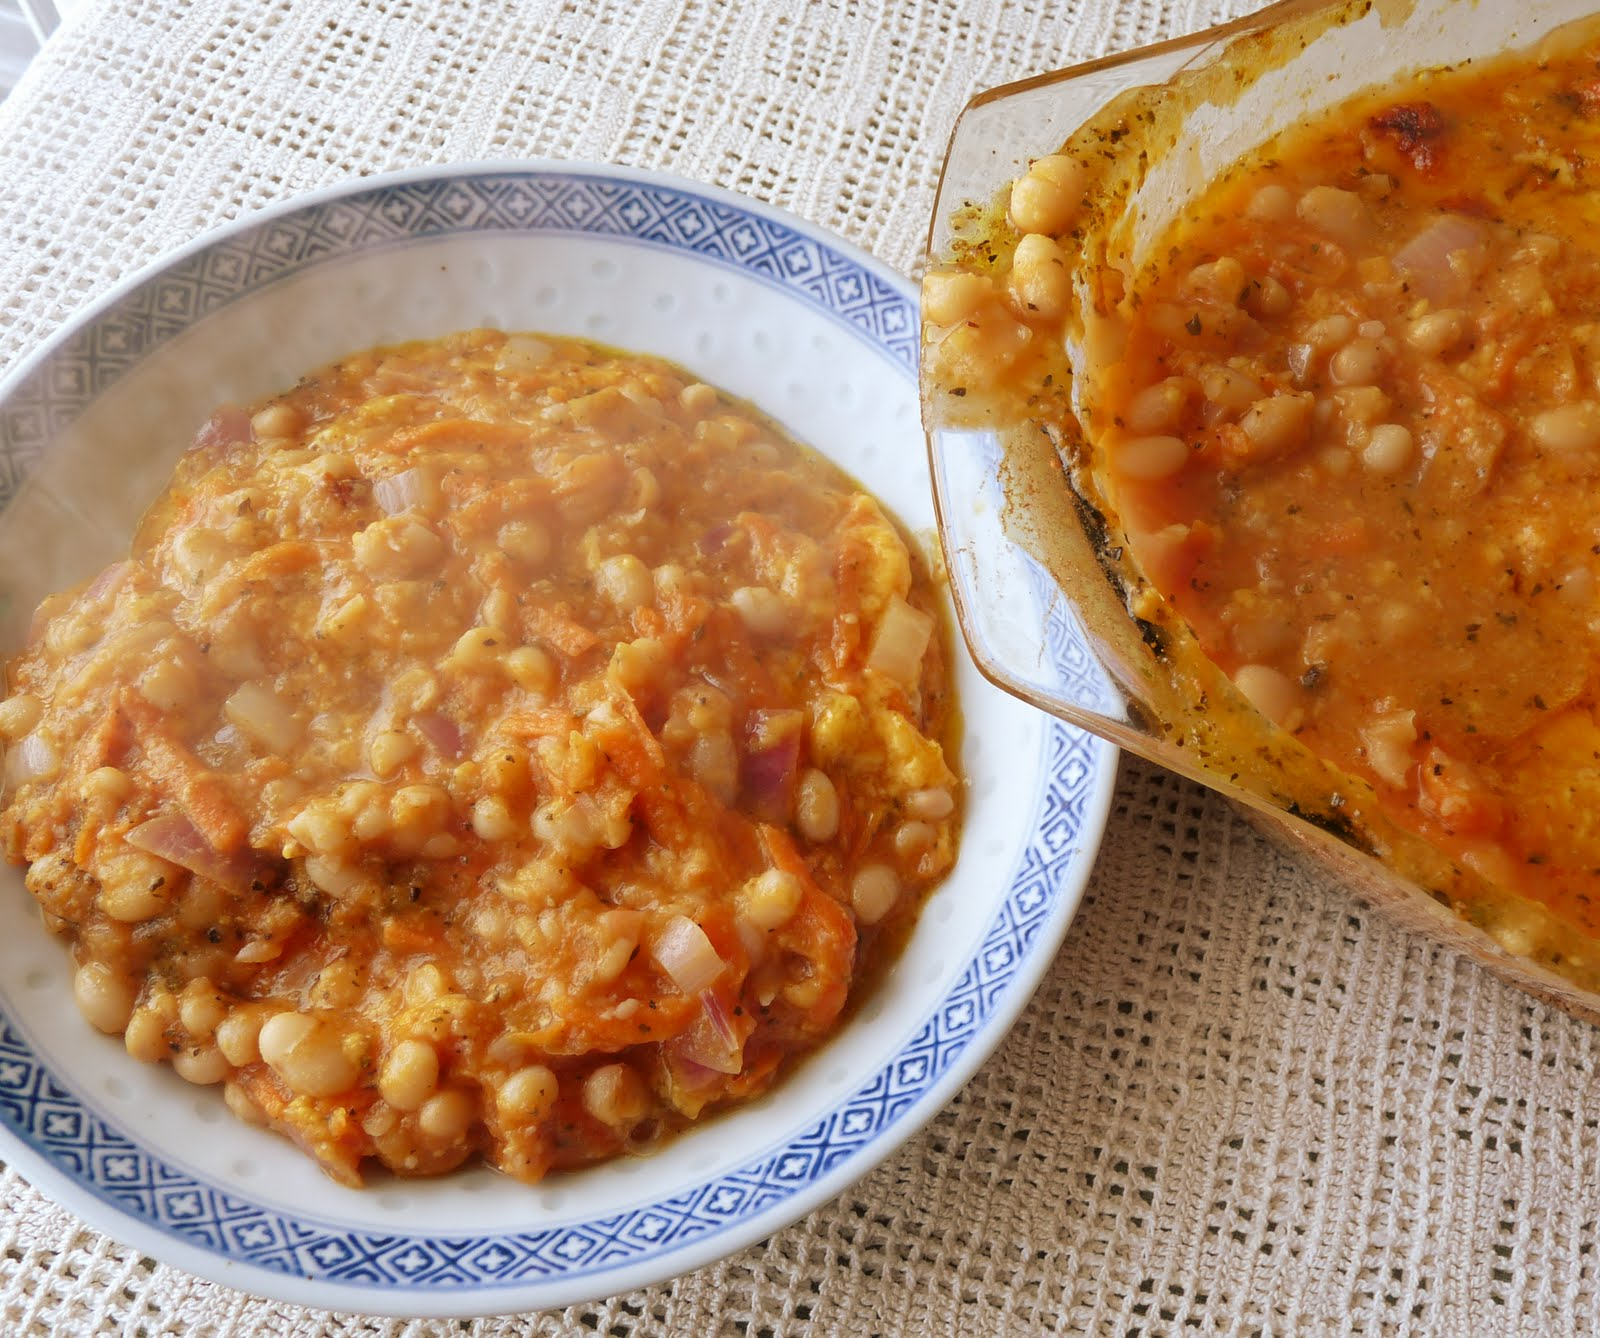 Seasonal Ontario Food: Cheesy Baked Beans in Tomato Sauce